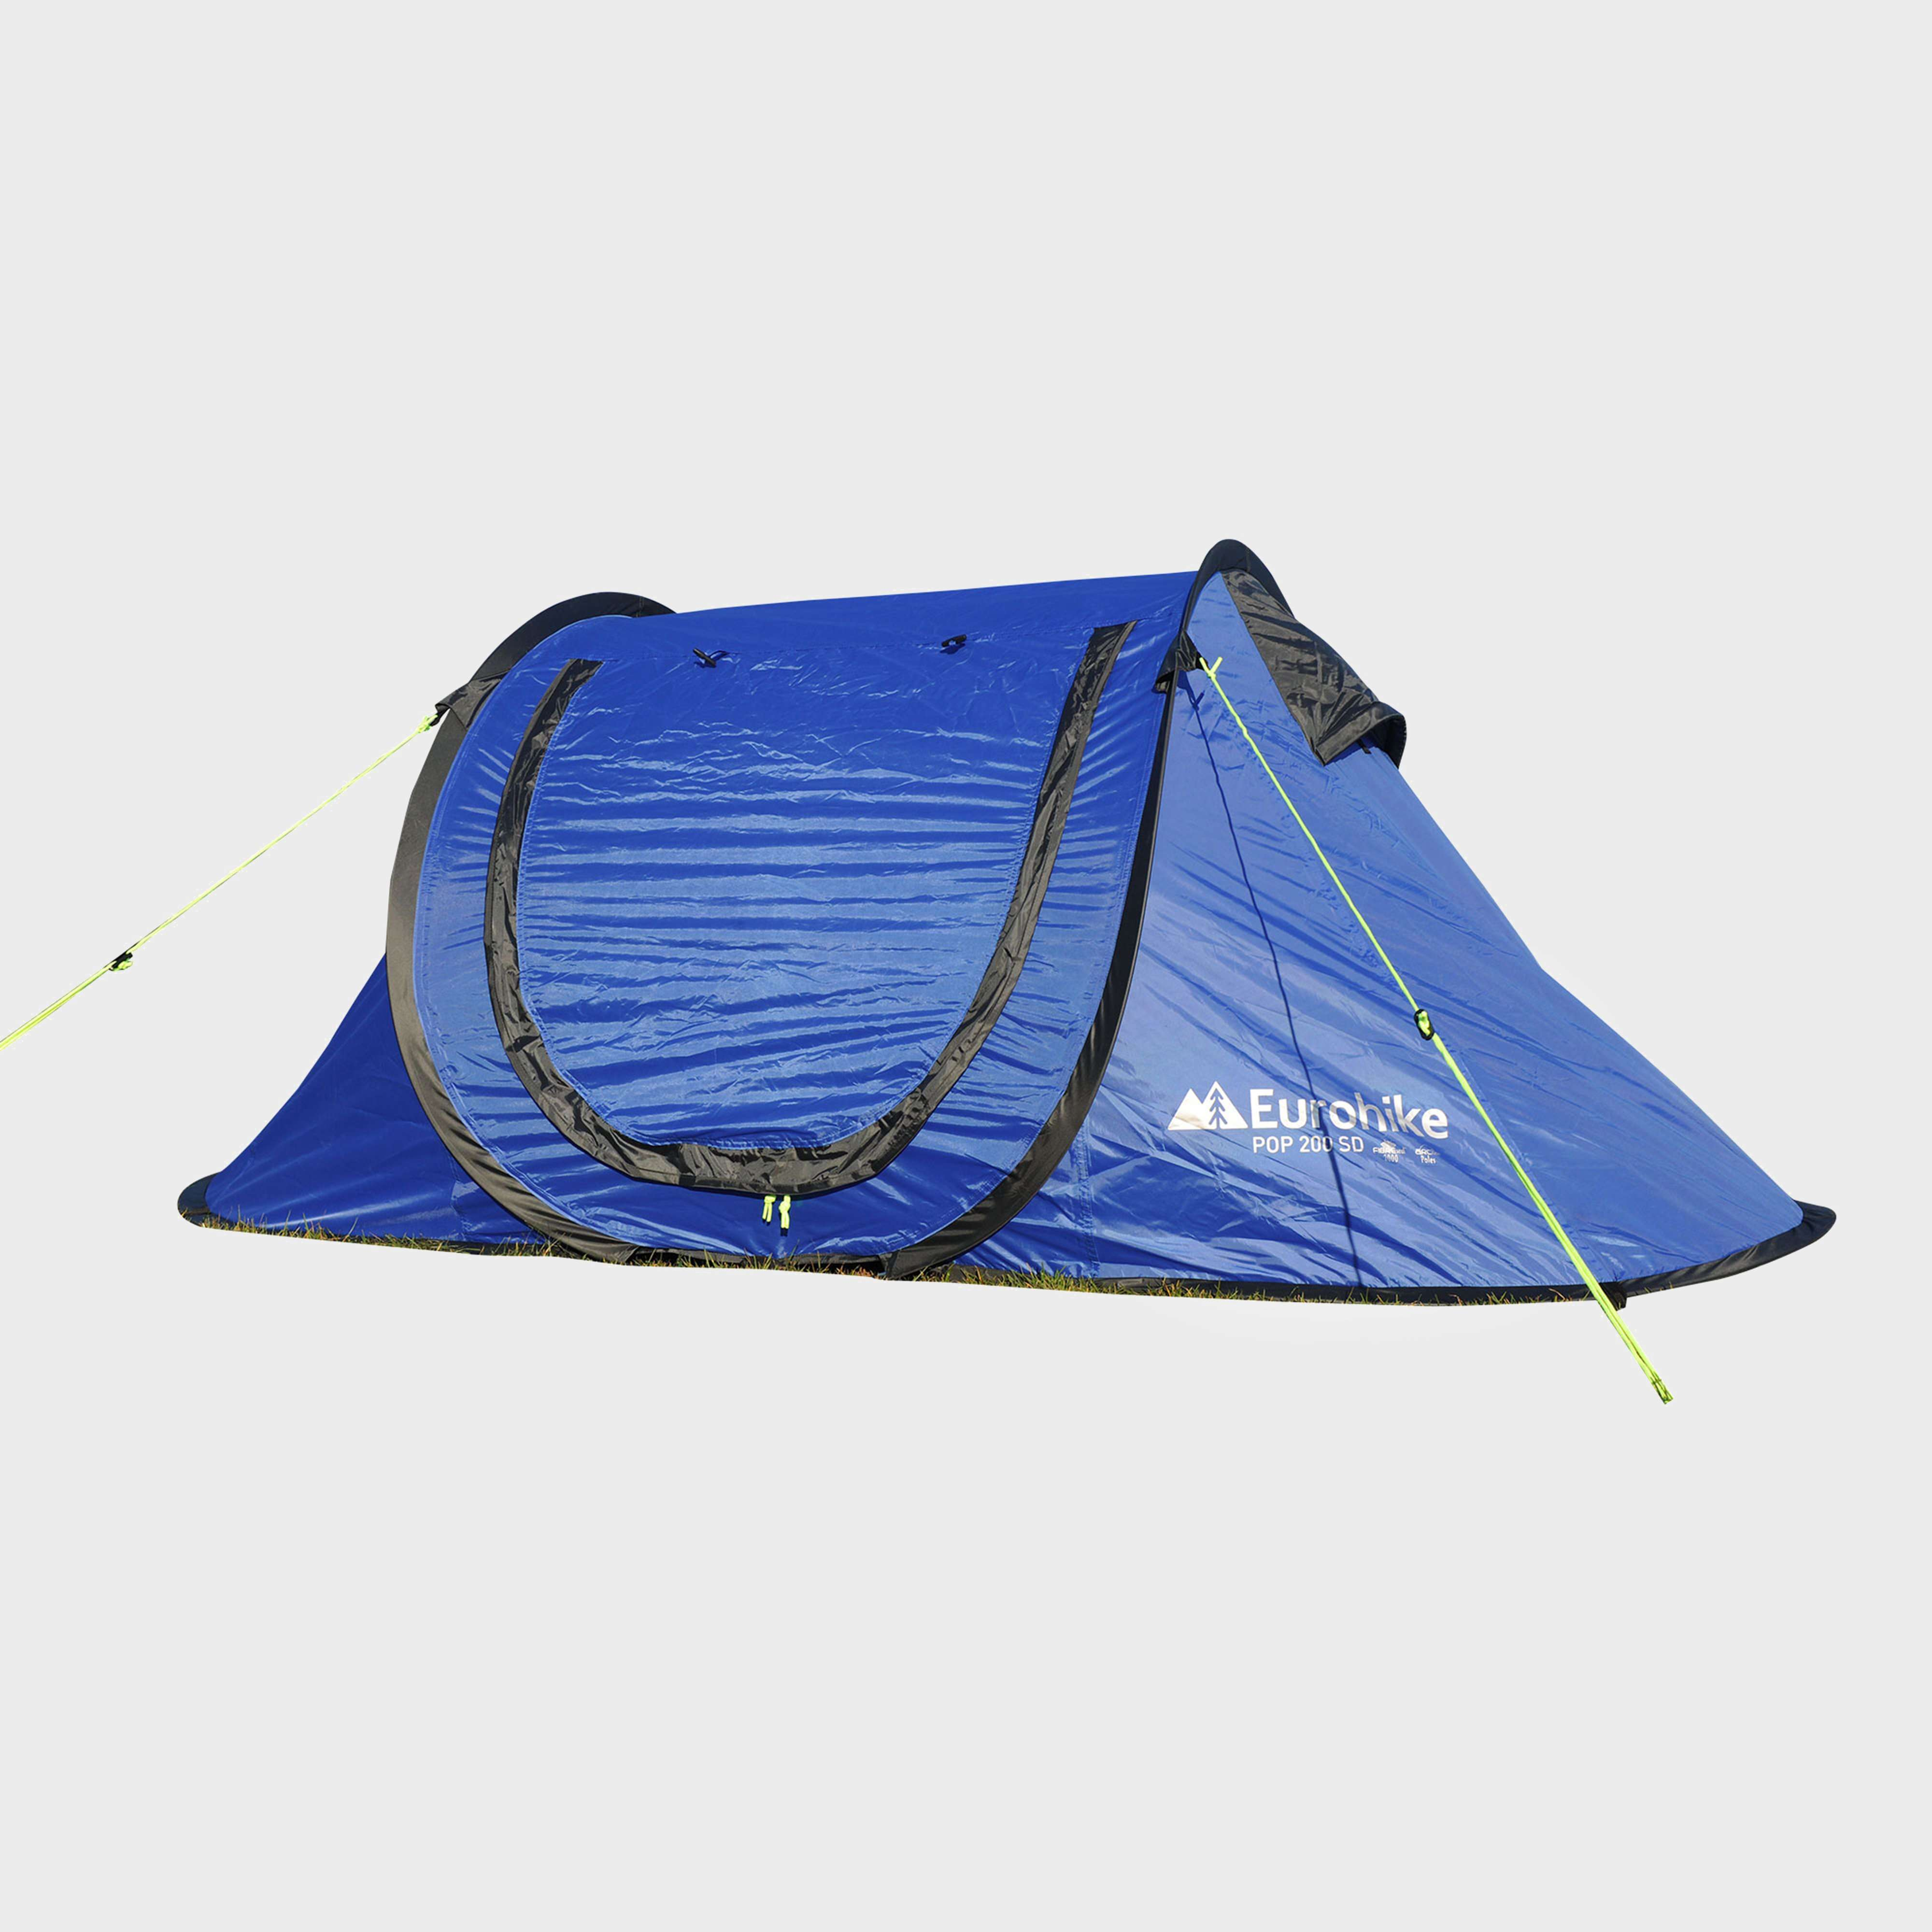 EUROHIKE Pop 200 2 Person Tent